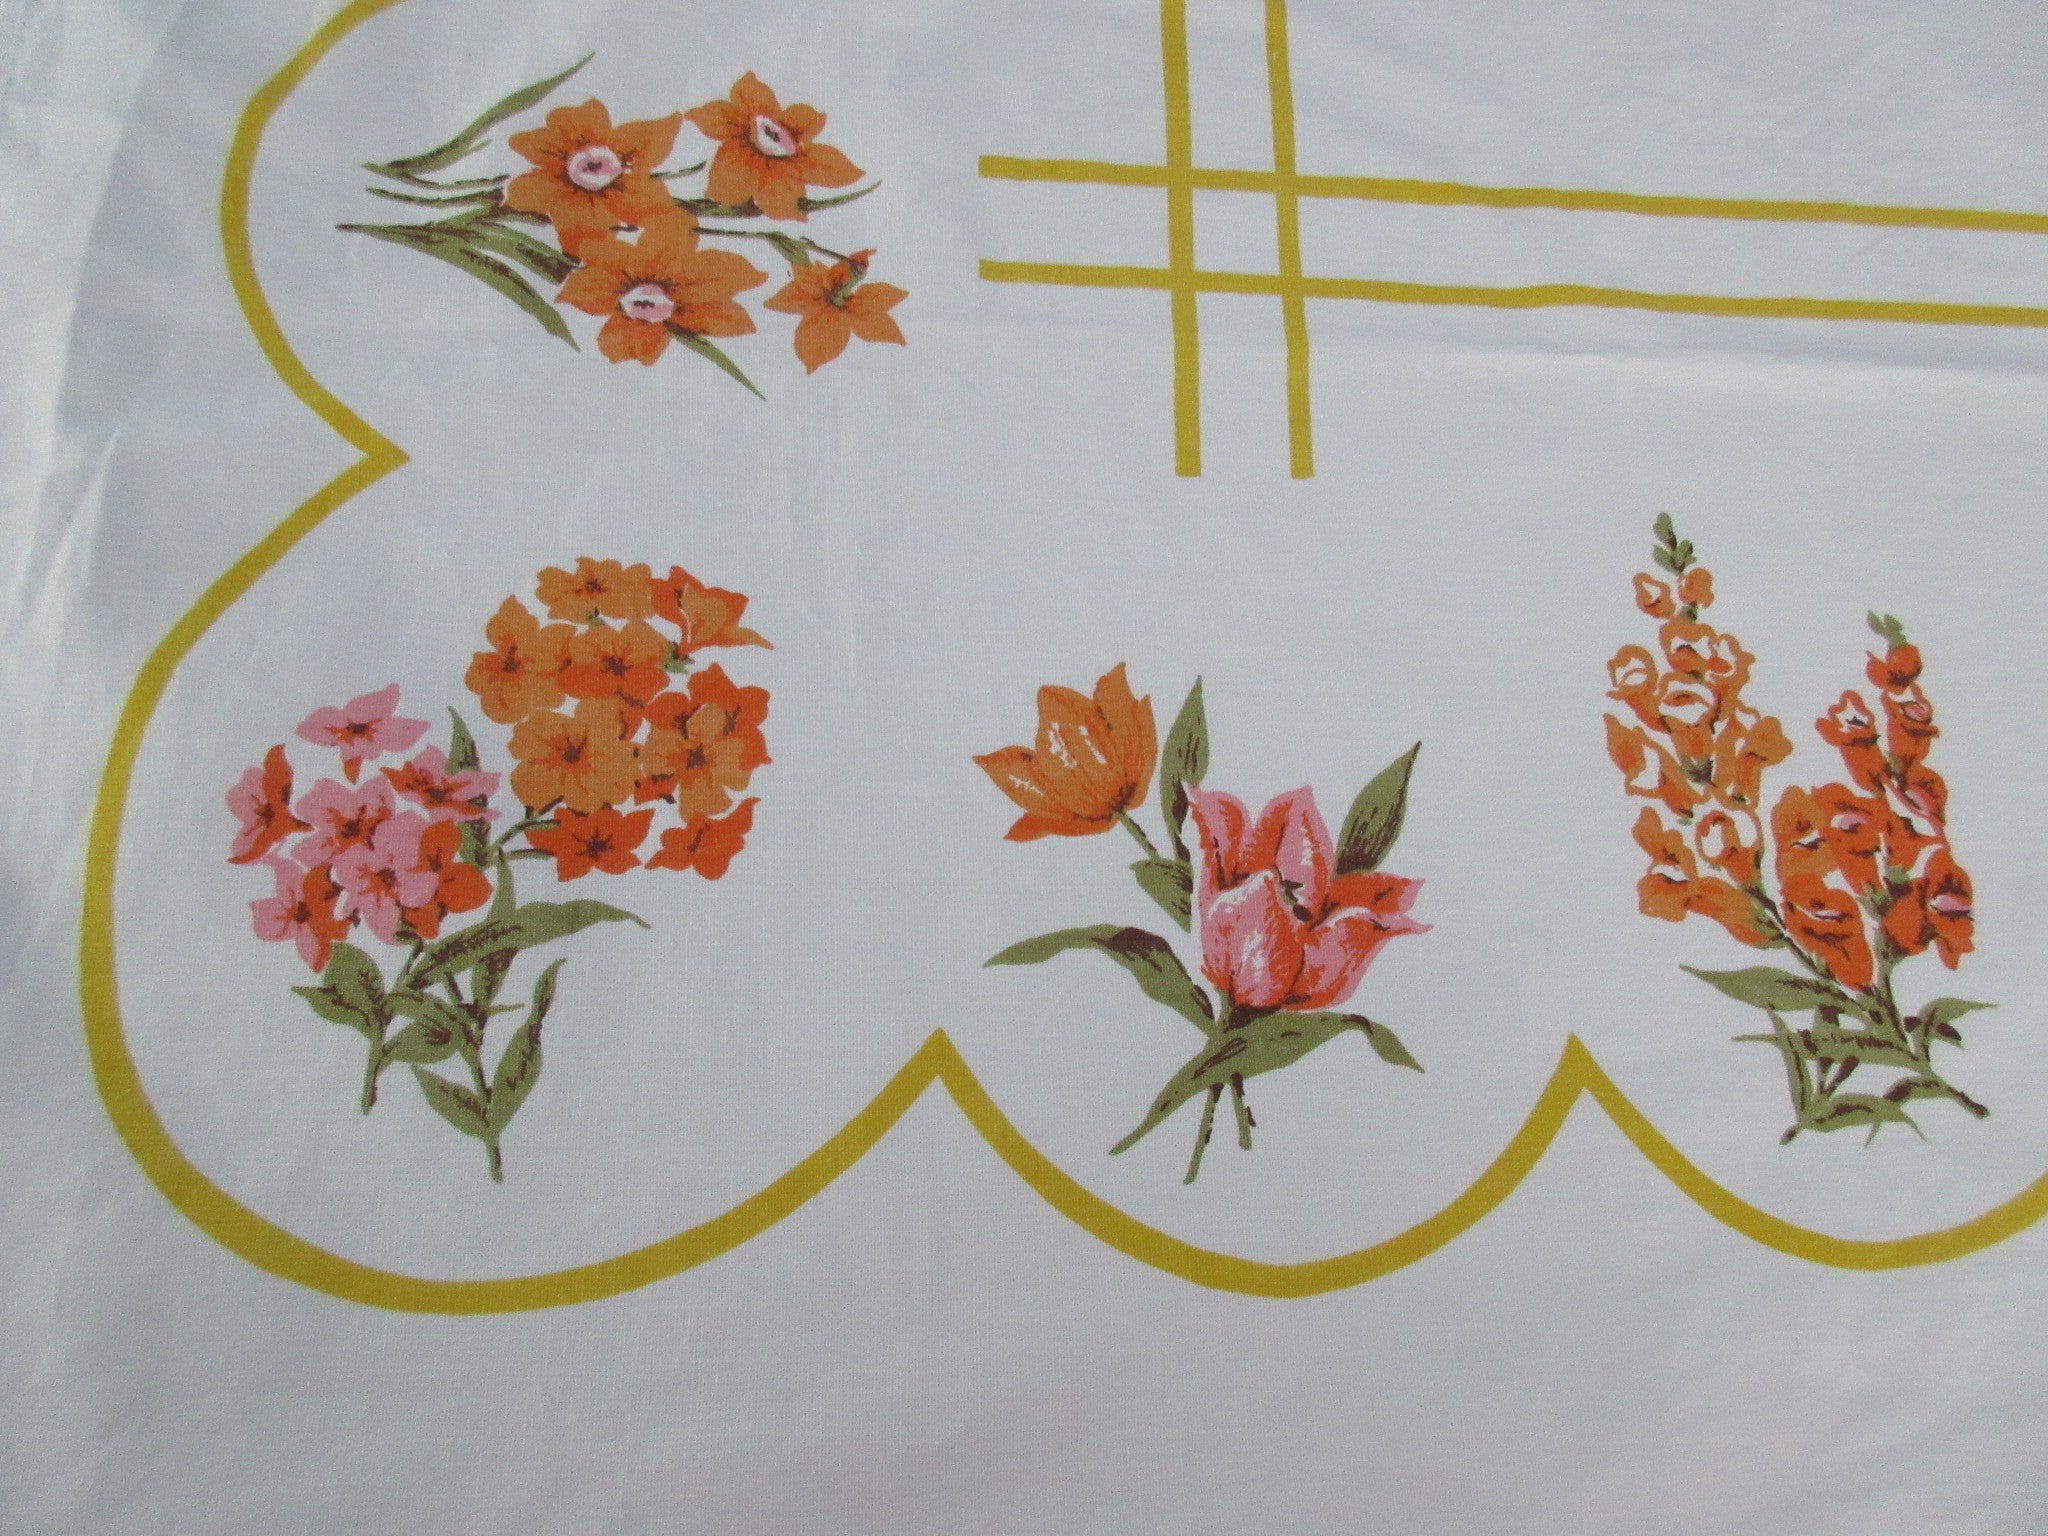 Pink Orange Pansies Violets on Gold Floral Linen Vintage Printed Tablecloth (63 X 52)